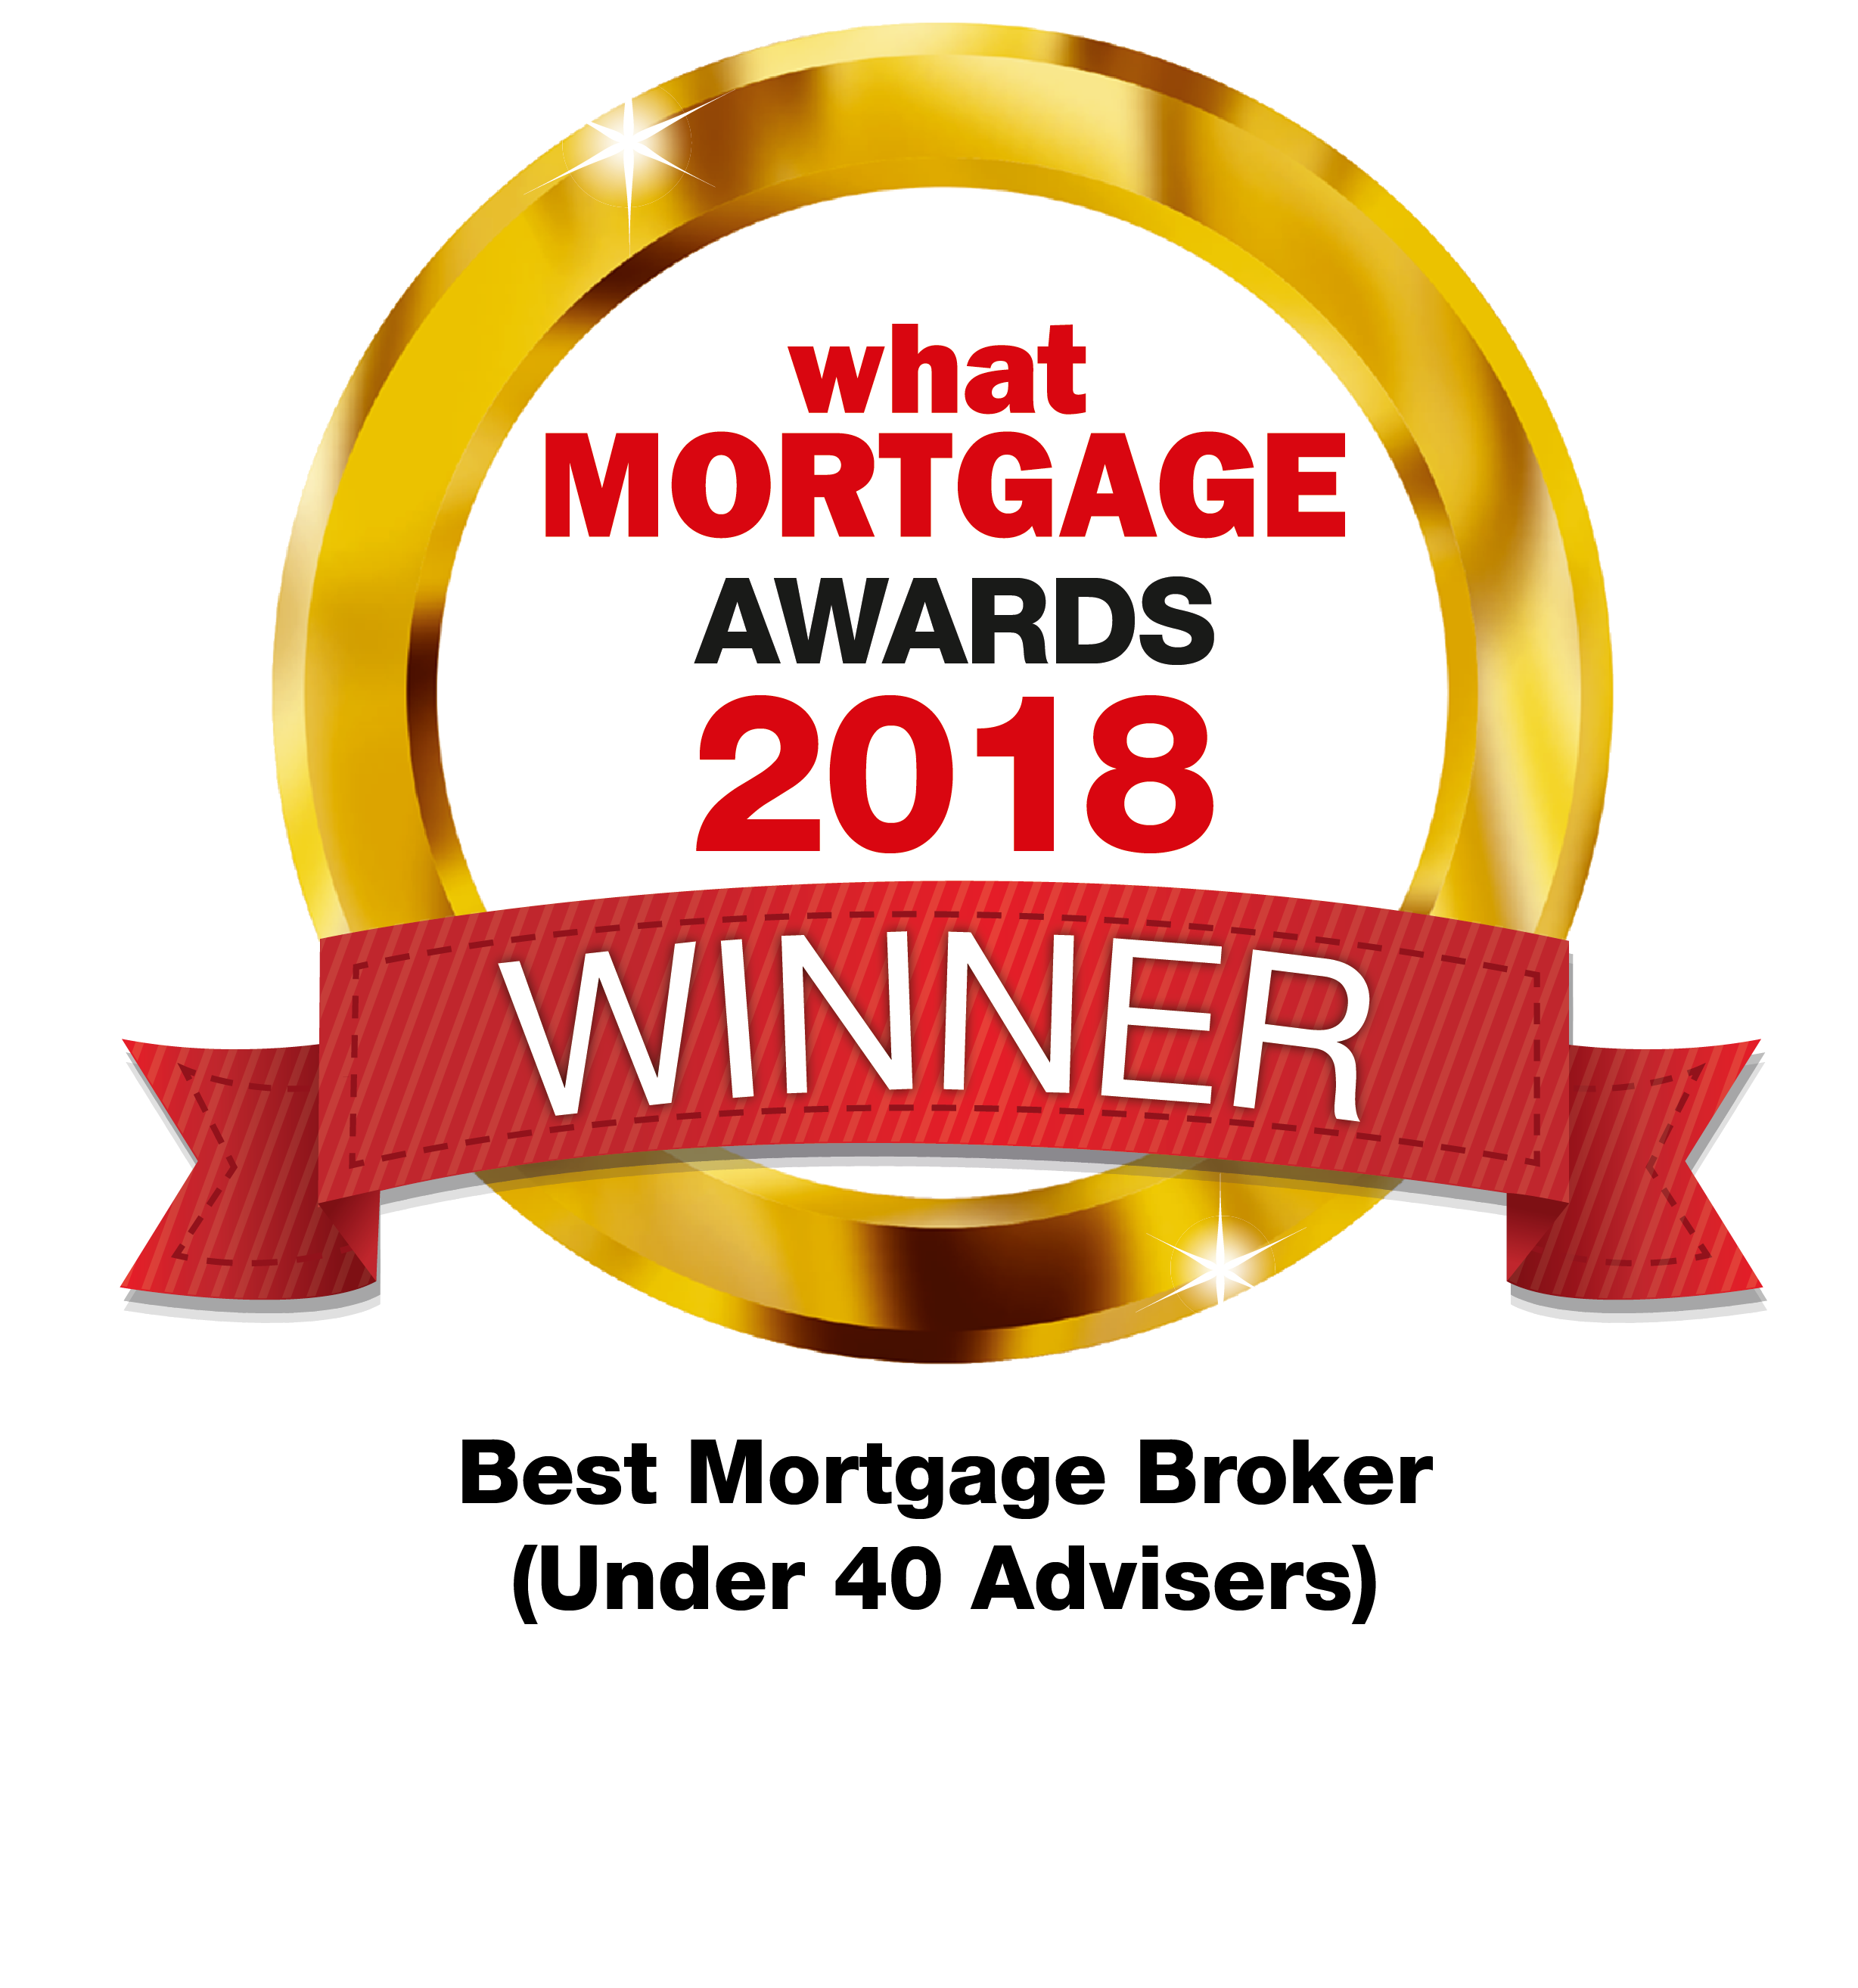 What Mortgage 2018 - Best Mortgage Broker (under 40 advisers)